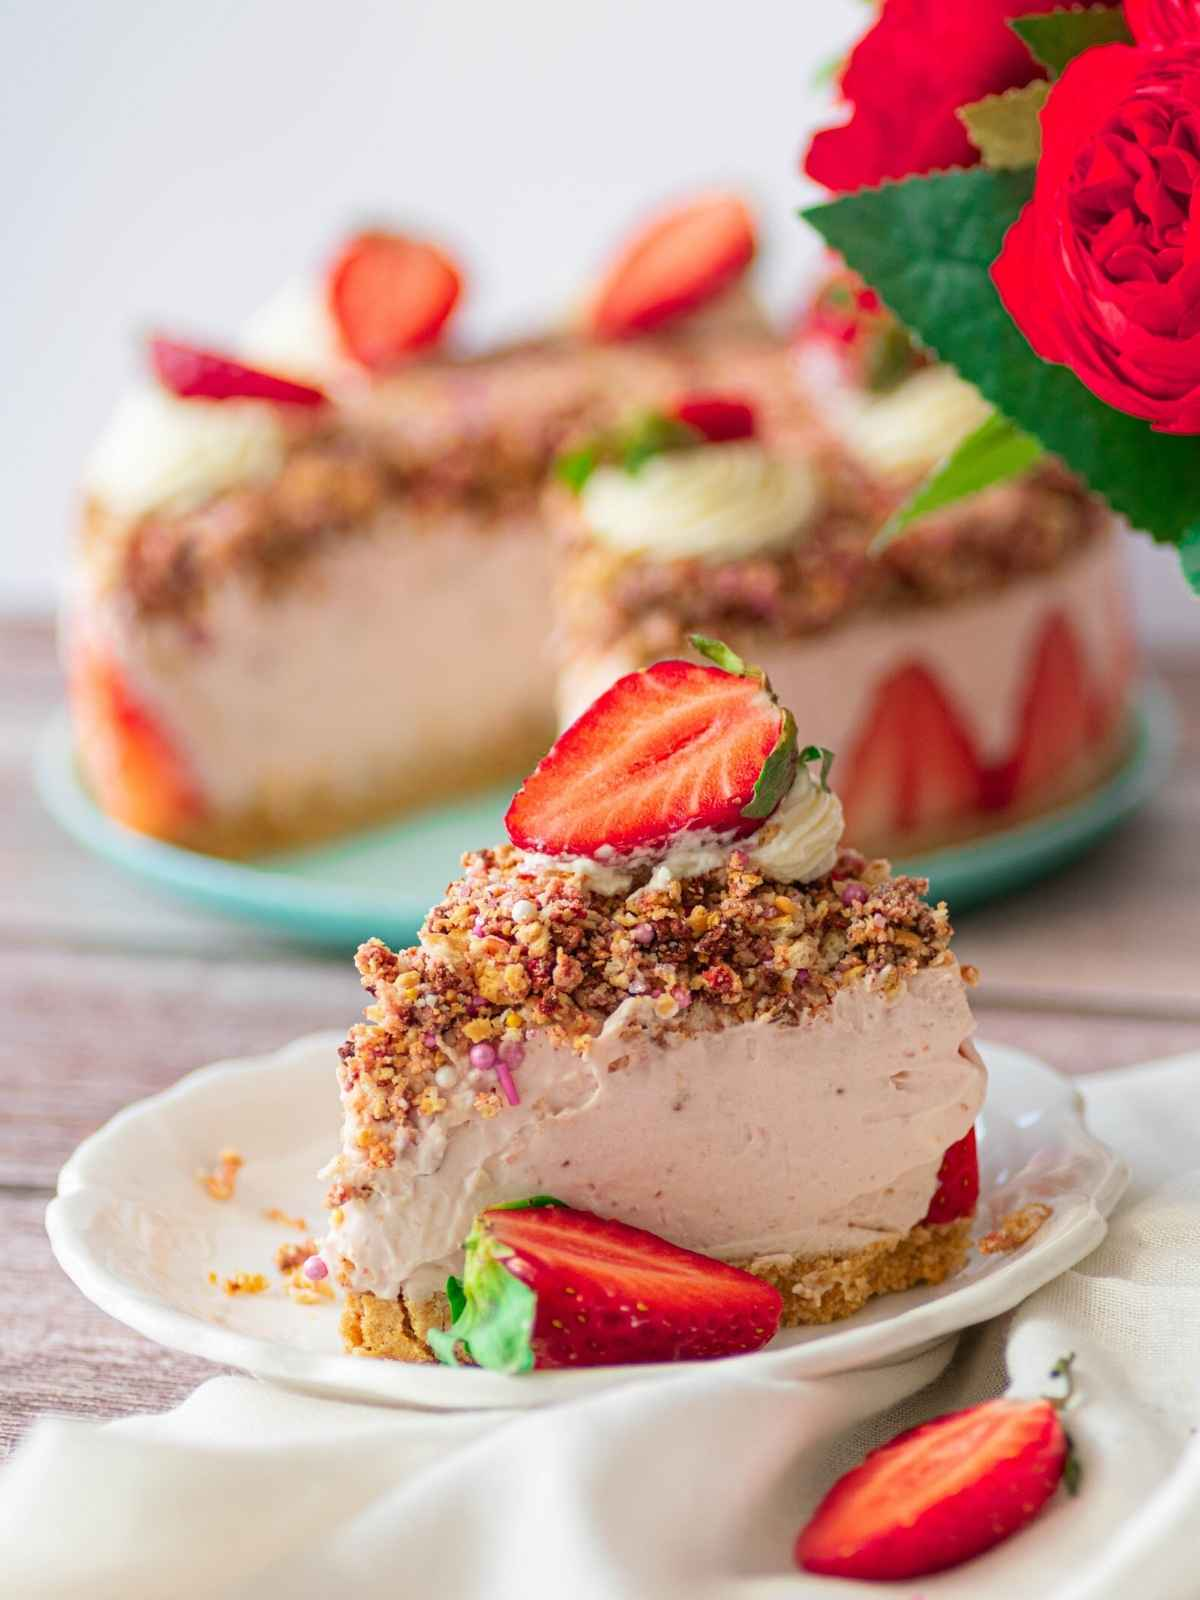 Slice of strawberry crunch cheesecake on white plate